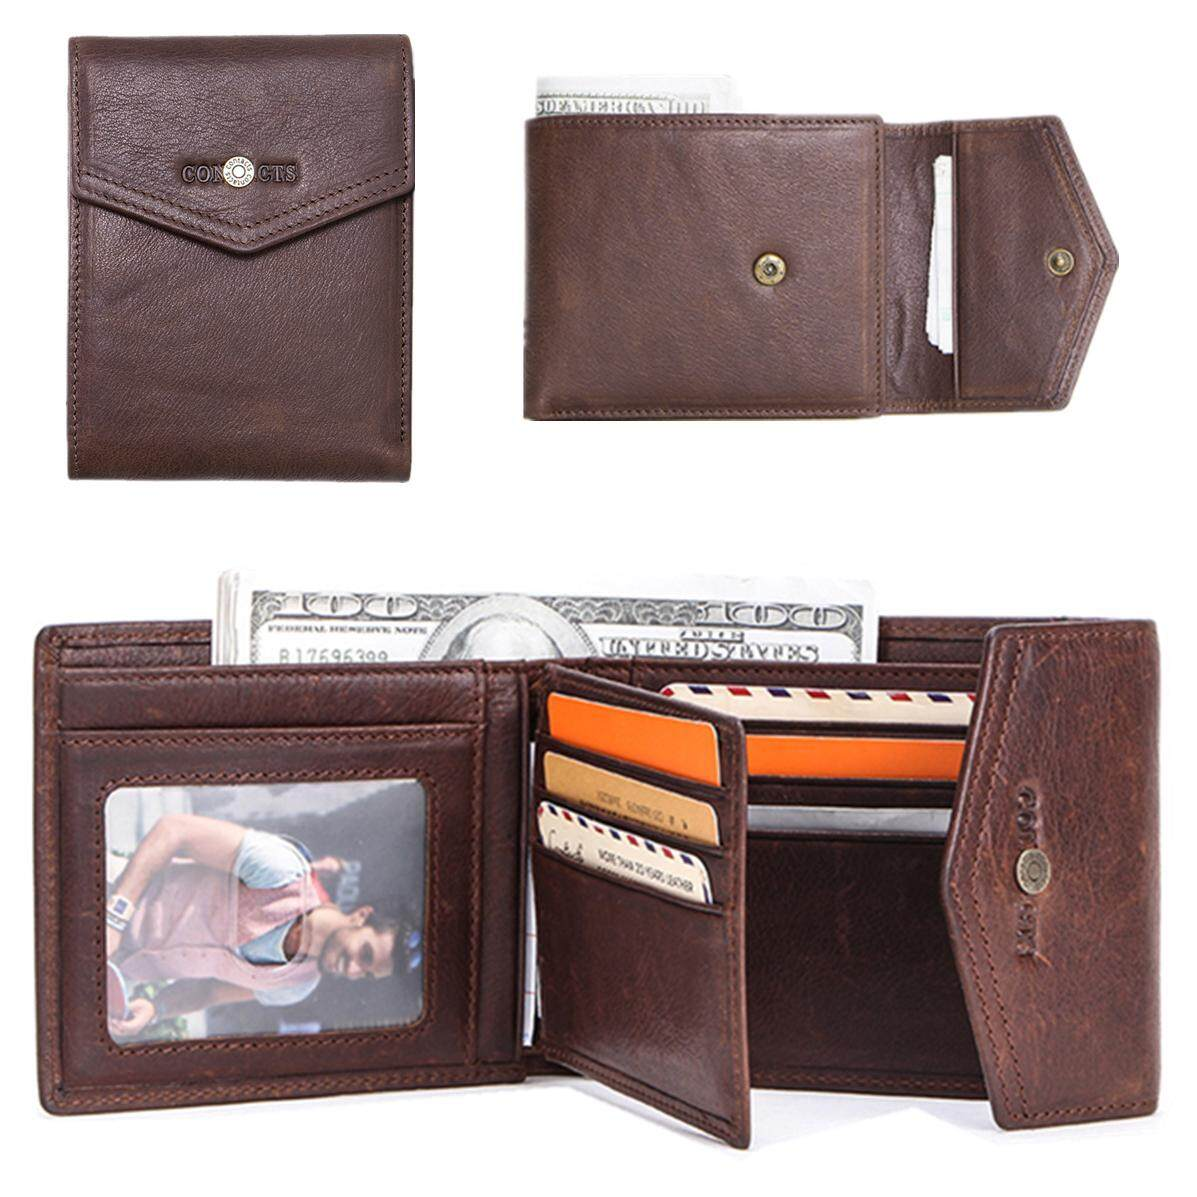 CONTACTS Crazy Horse Leather Men Wallet with Coin Pocket Hasp Money Bag Horizontal Vintage Short Wallet for Business Male